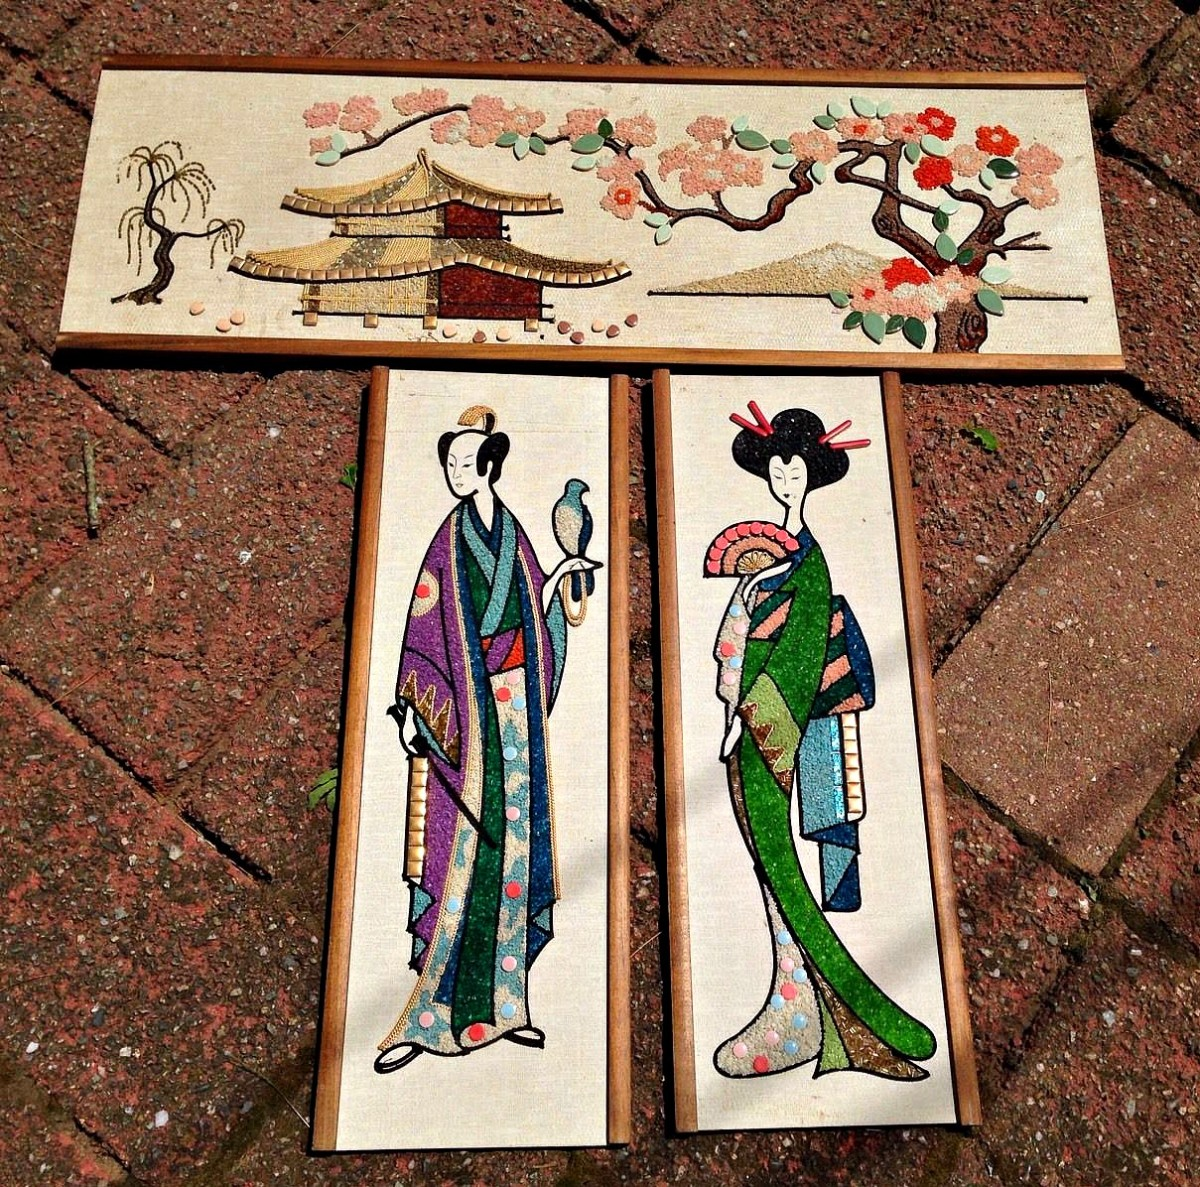 "Three Piece Vintage Asian Gravel Art Set Mid Century Modern. The large one measures 36"" x 12.5. Smaller ones measure 24"" x 8.5."